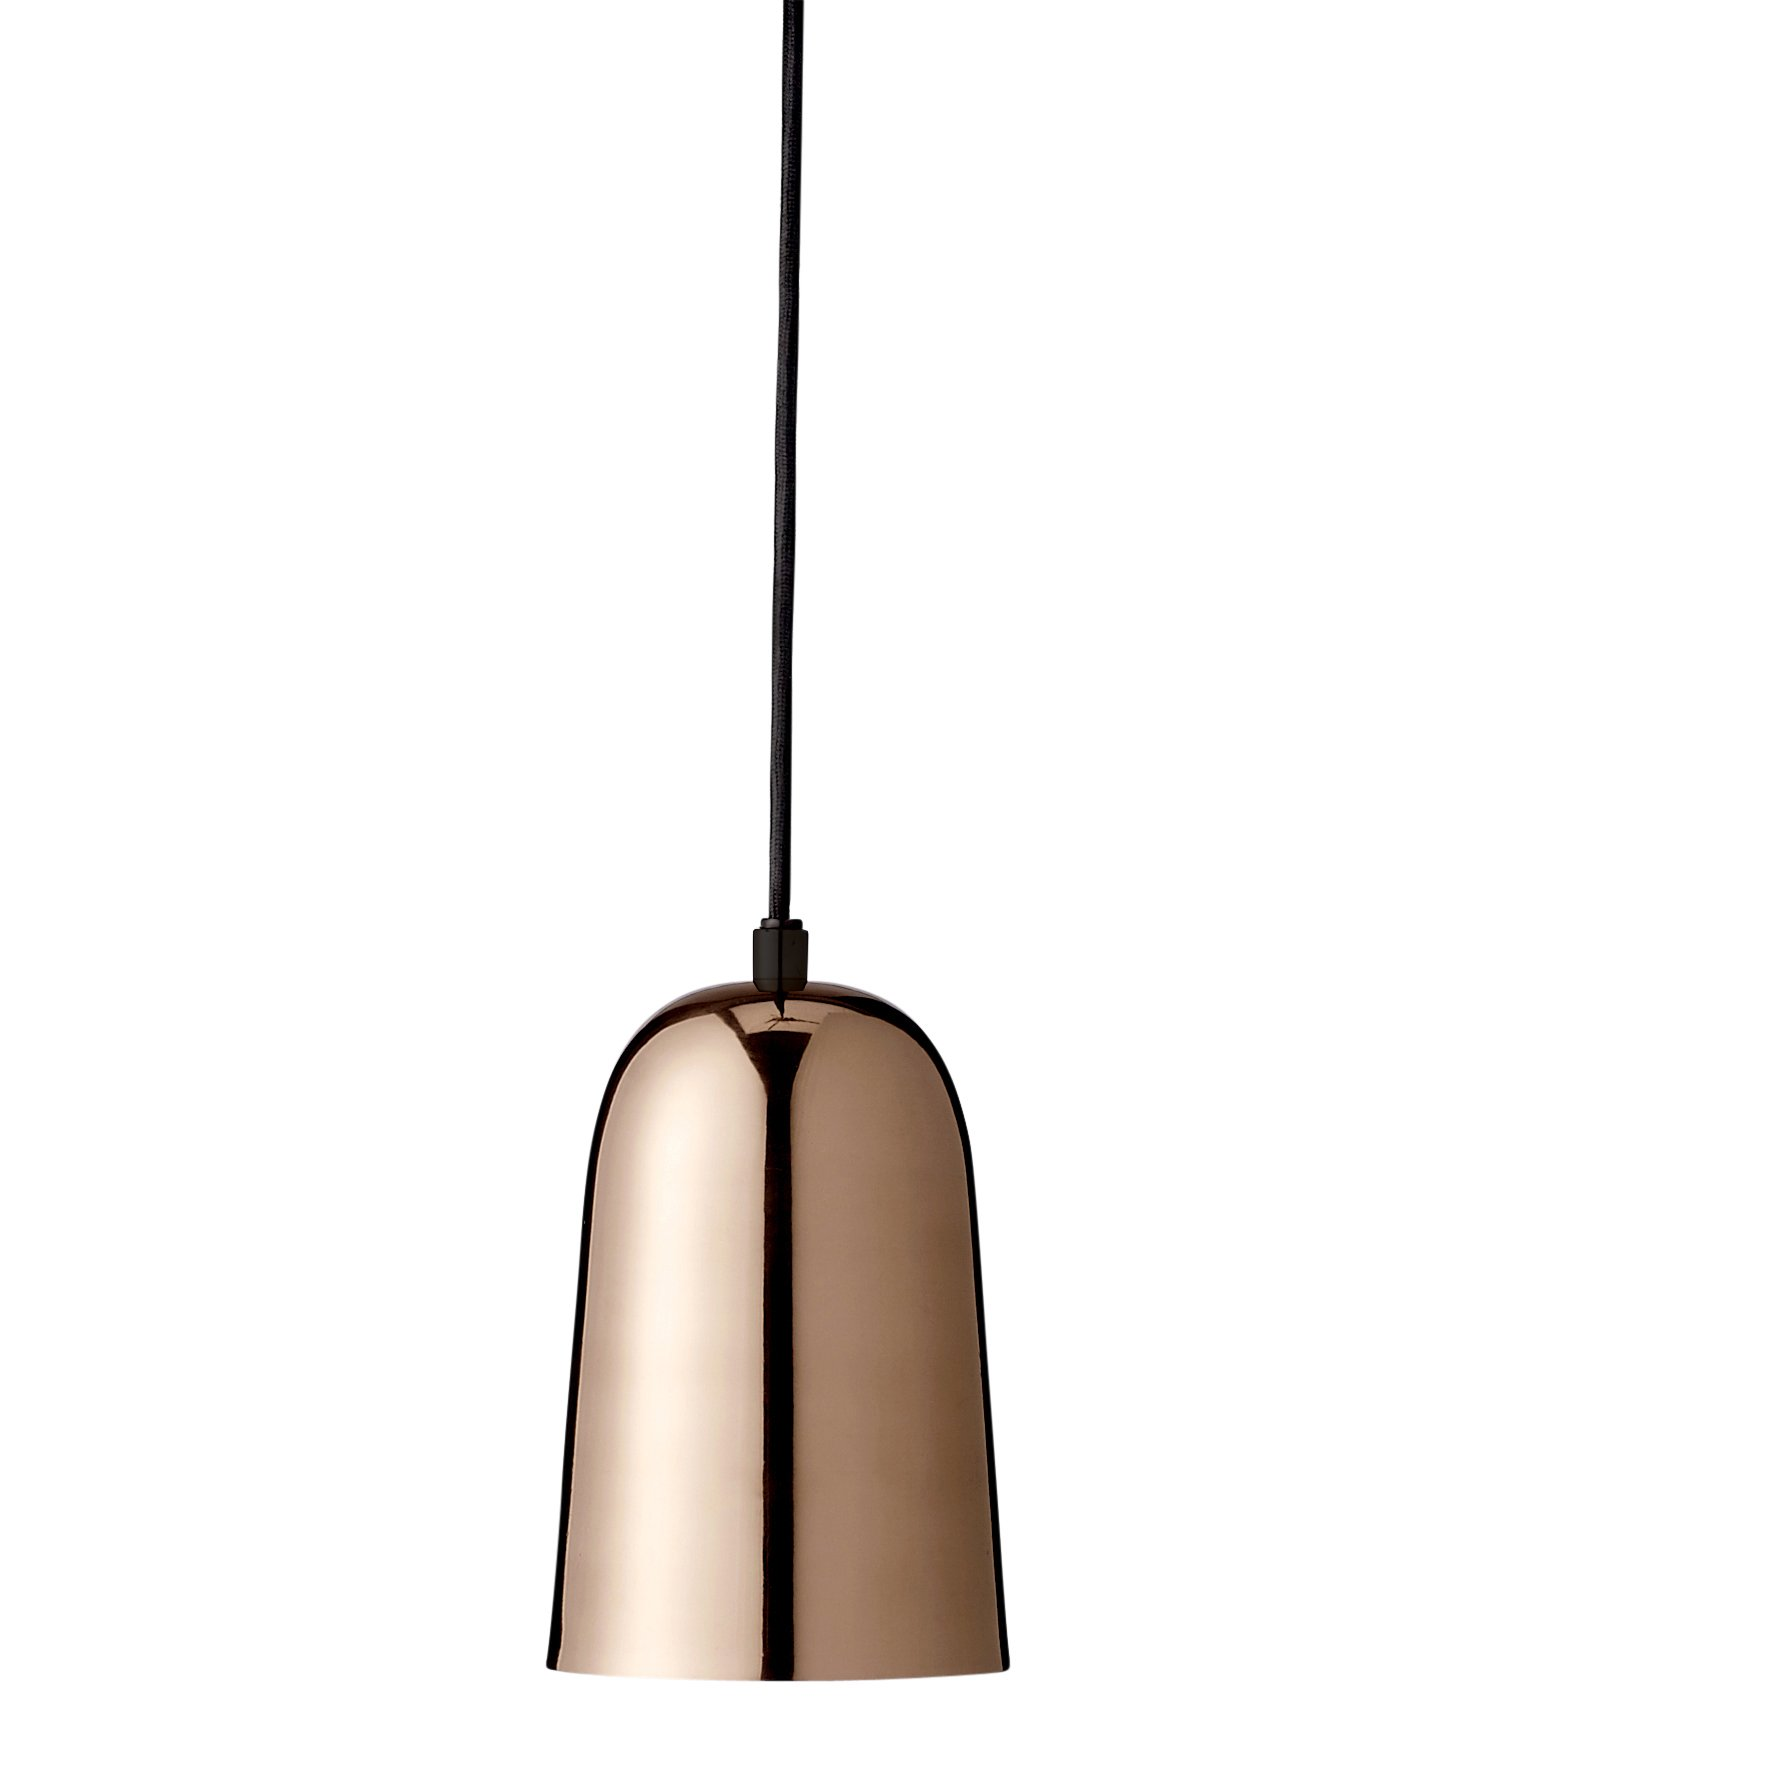 Bloomingville A489072 Brass Pendant Lamp with Copper Electroplated Finish